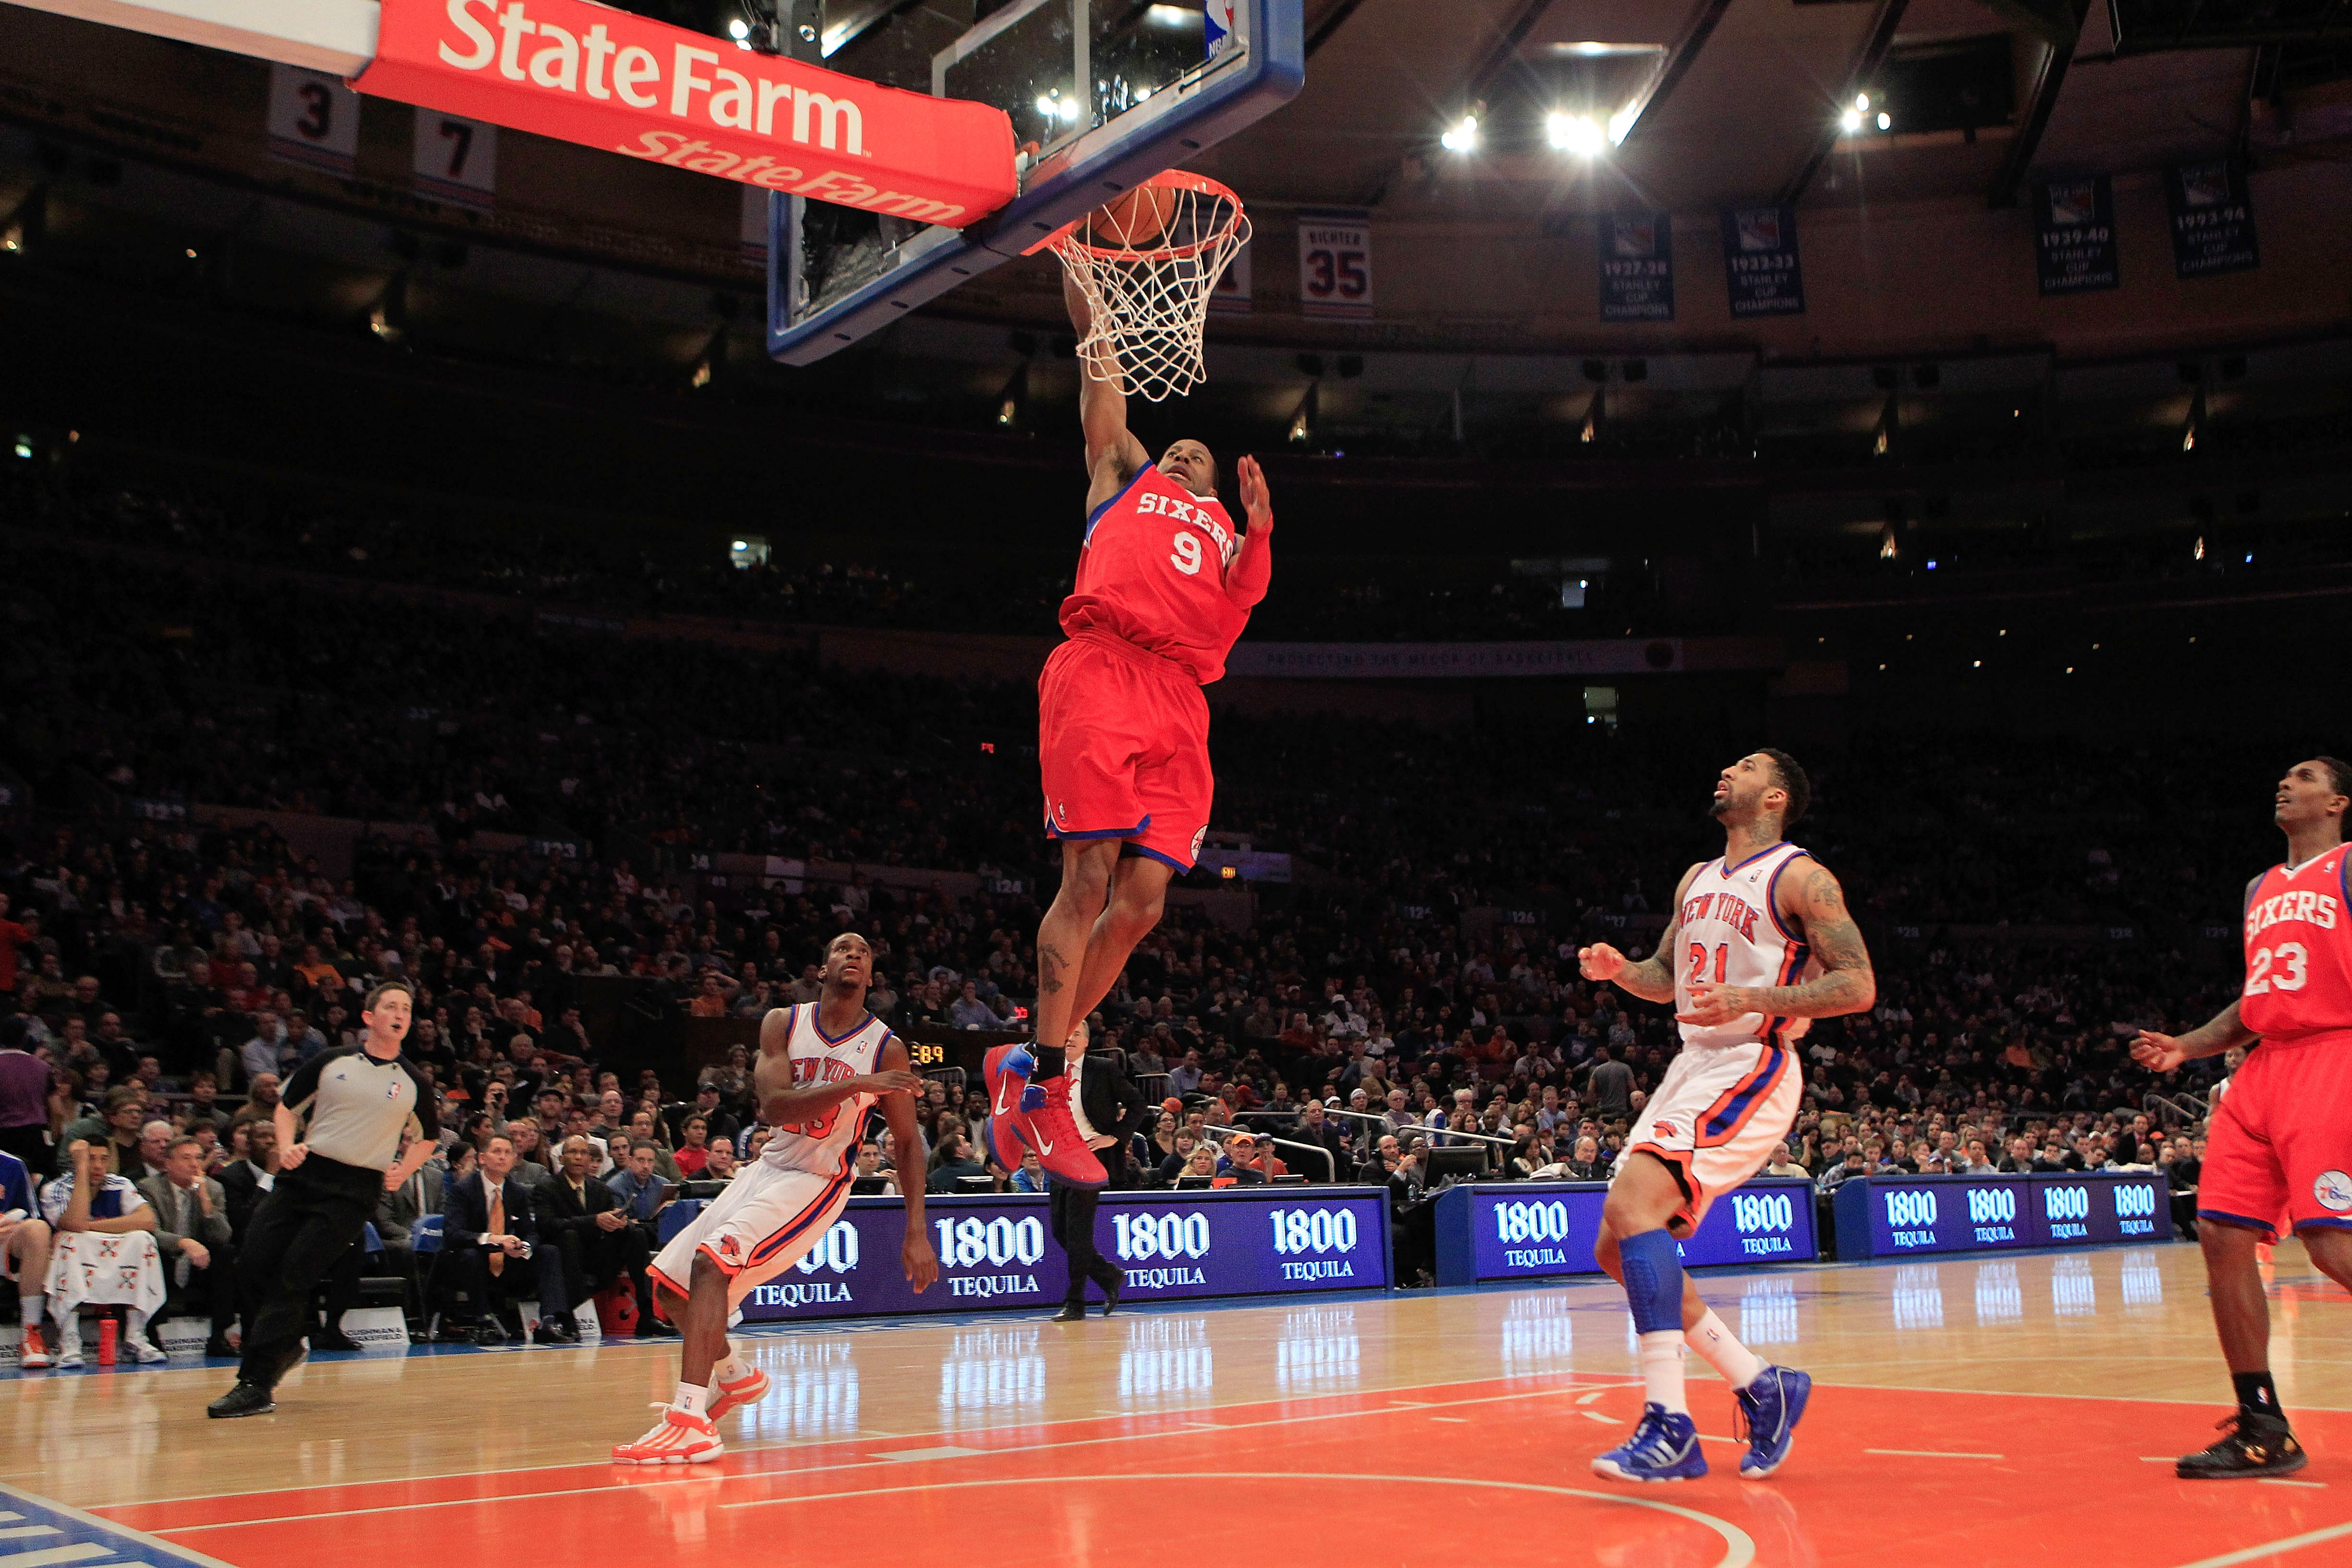 NEW YORK, NY - FEBRUARY 06:  Andre Iguodala #9 of the Philadelphia 76ers dunks the ball against the New York Knicks at Madison Square Garden on February 6, 2011 in New York City. NOTE TO USER: User expressly acknowledges and agrees that, by downloading an